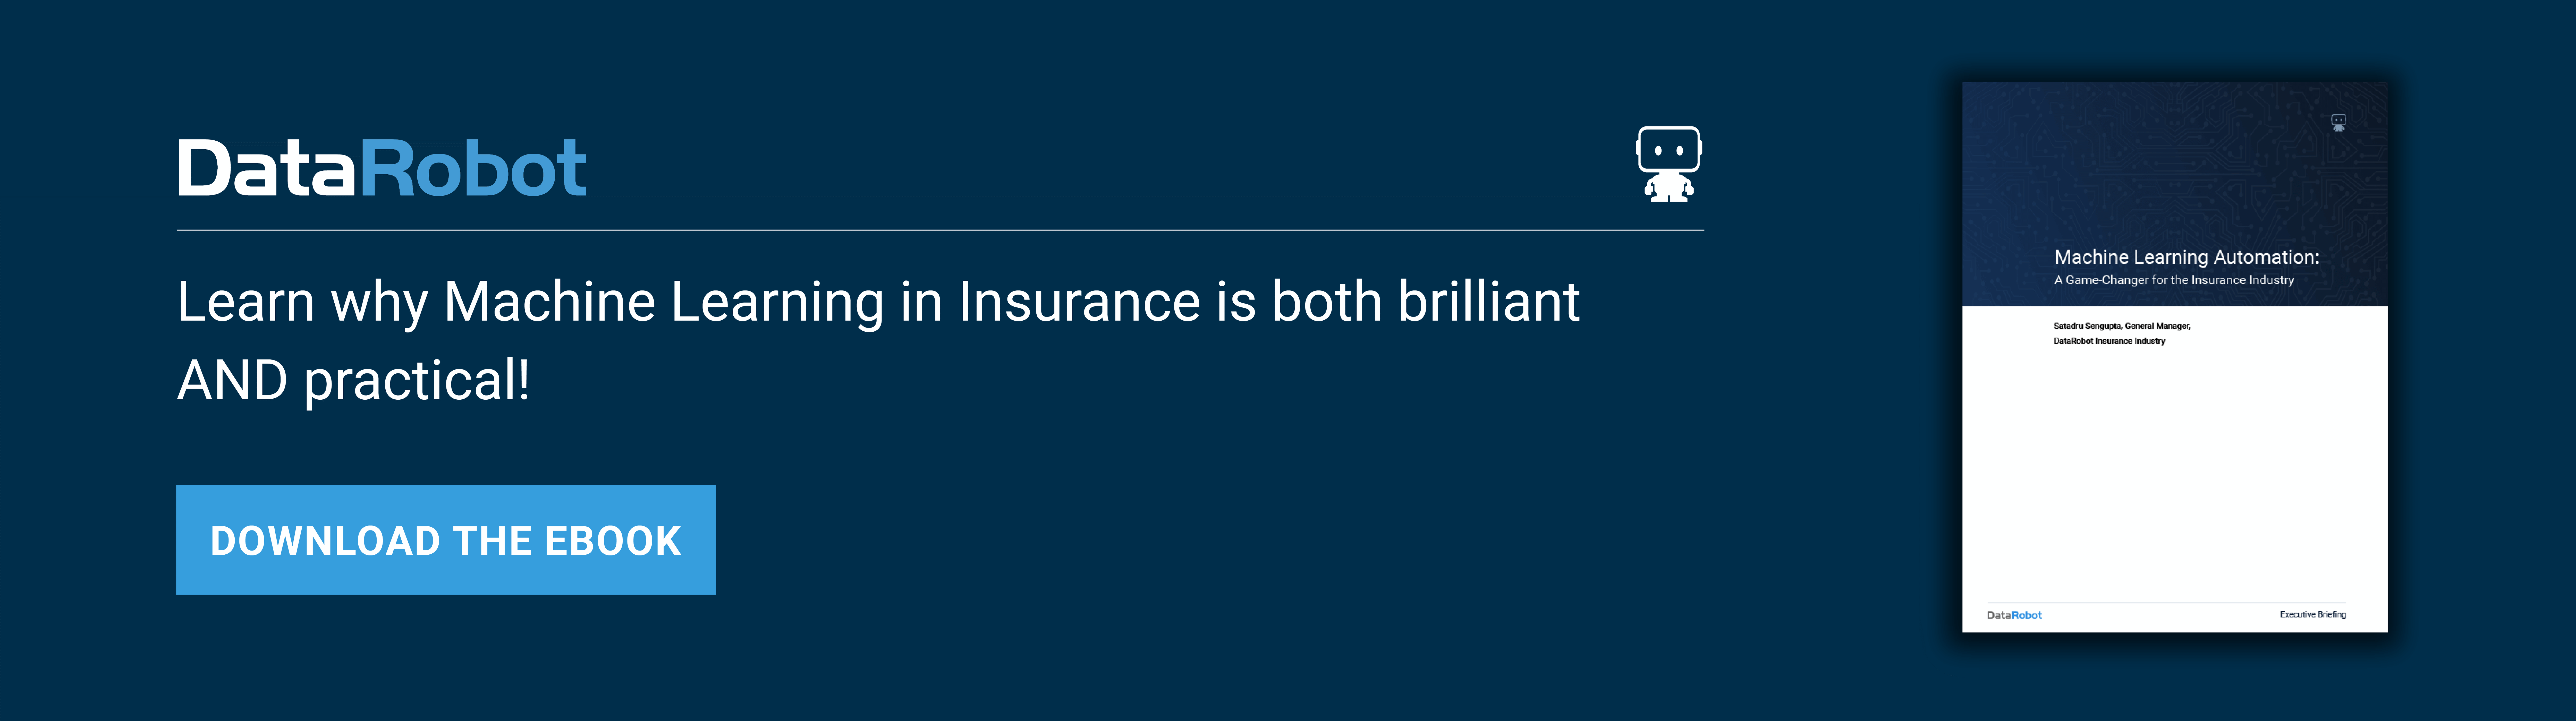 https://www.datarobot.com/resources/insurance-executive-brief/?cta_id=without-geography&cta_position=post-blog